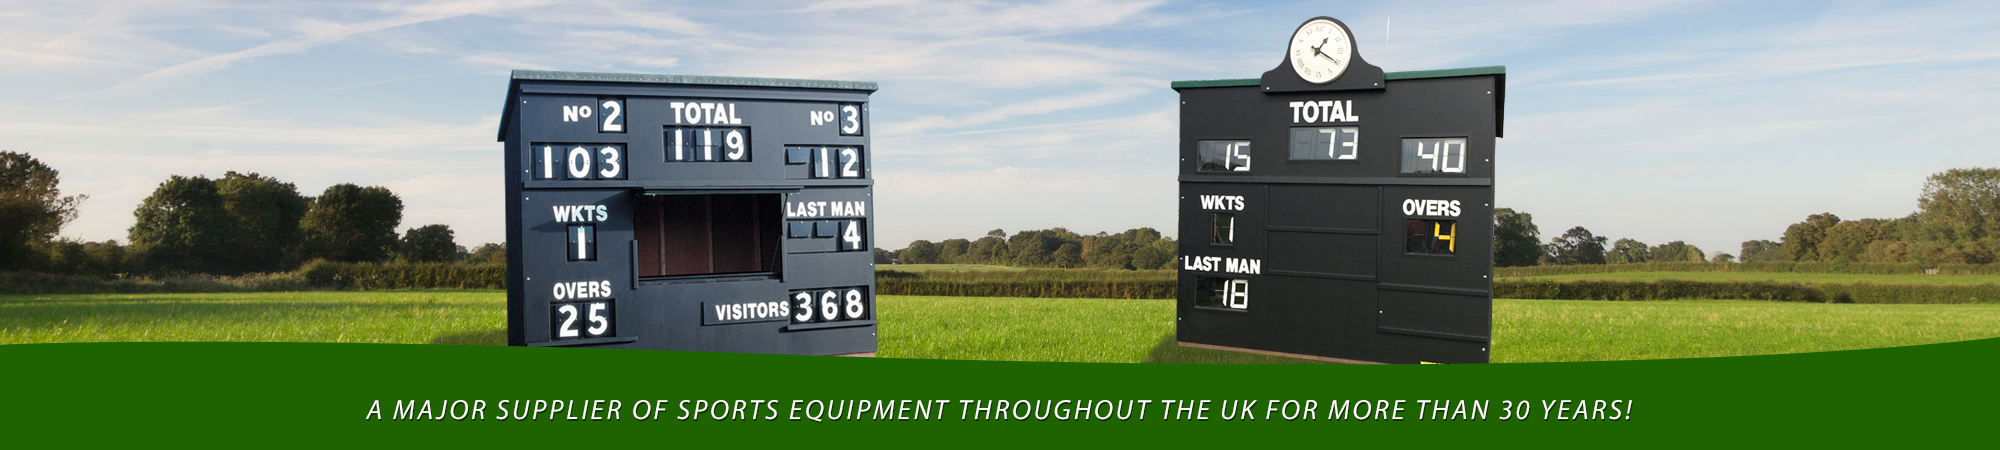 SportyCo Cricket Scoreboards